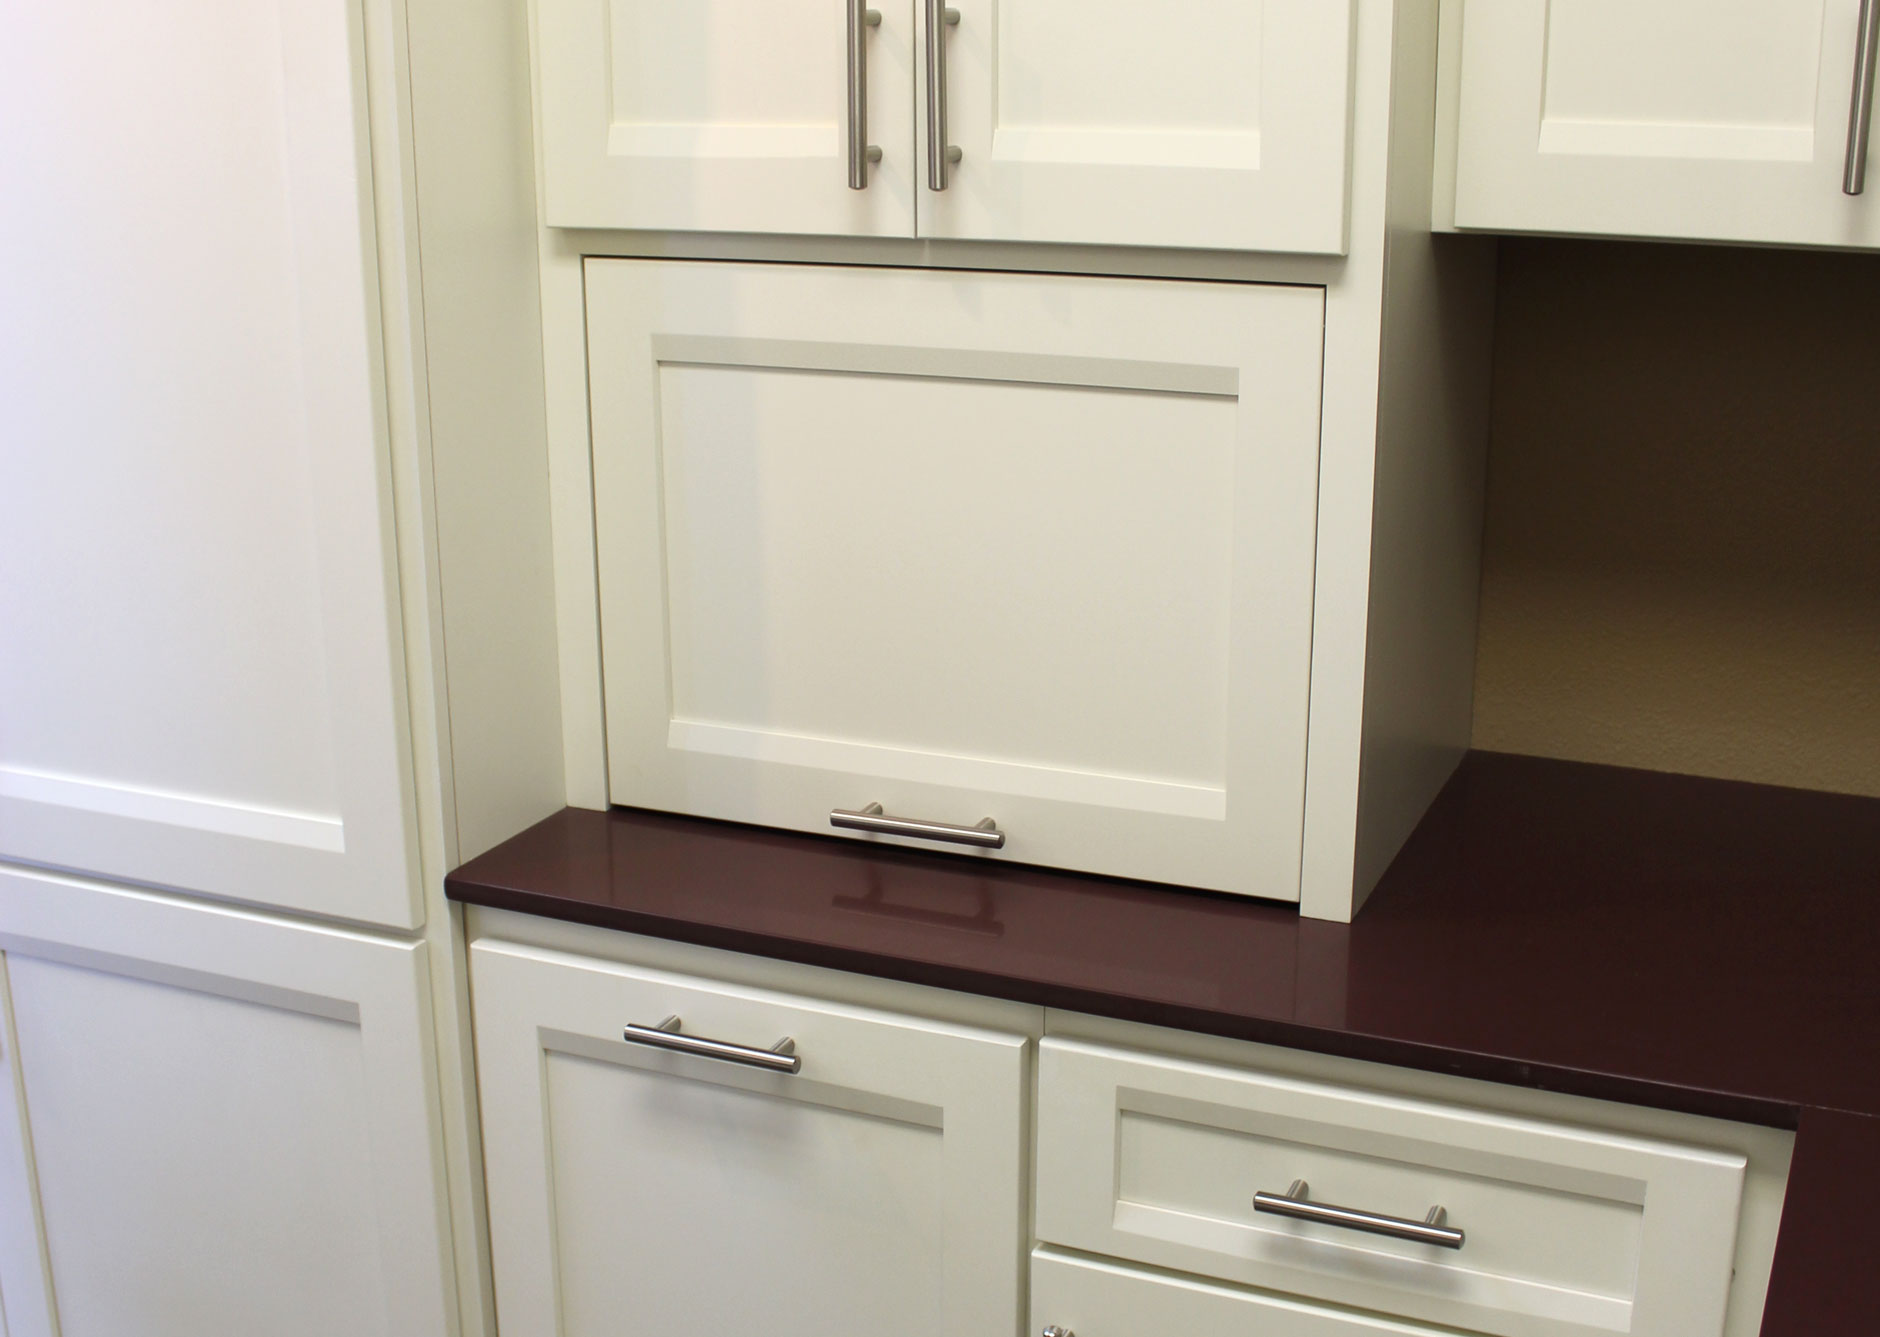 Kitchen Cabinets Appliance Garage Appliance Storage Burrows Cabinets Central Texas